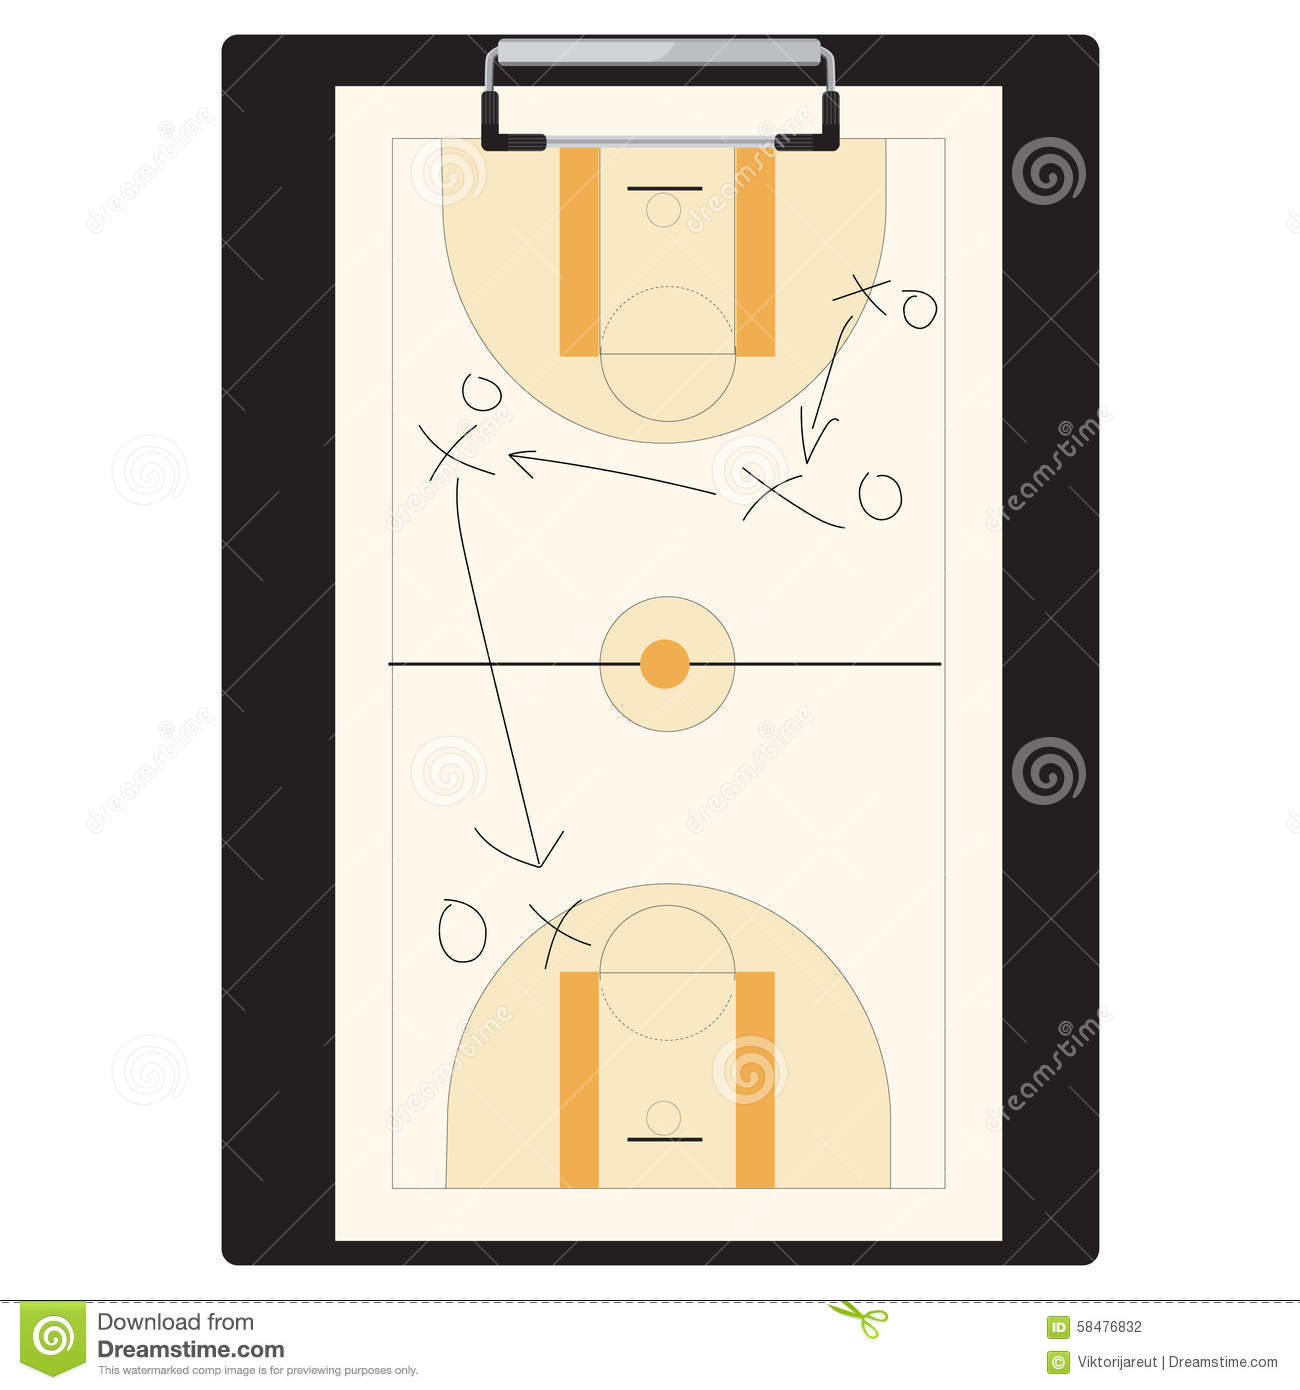 essay game basketball Free essay: as the ball drops, energy is stored inside potential energy plays a role in the height of basketball once the ball is positioned, the ball.